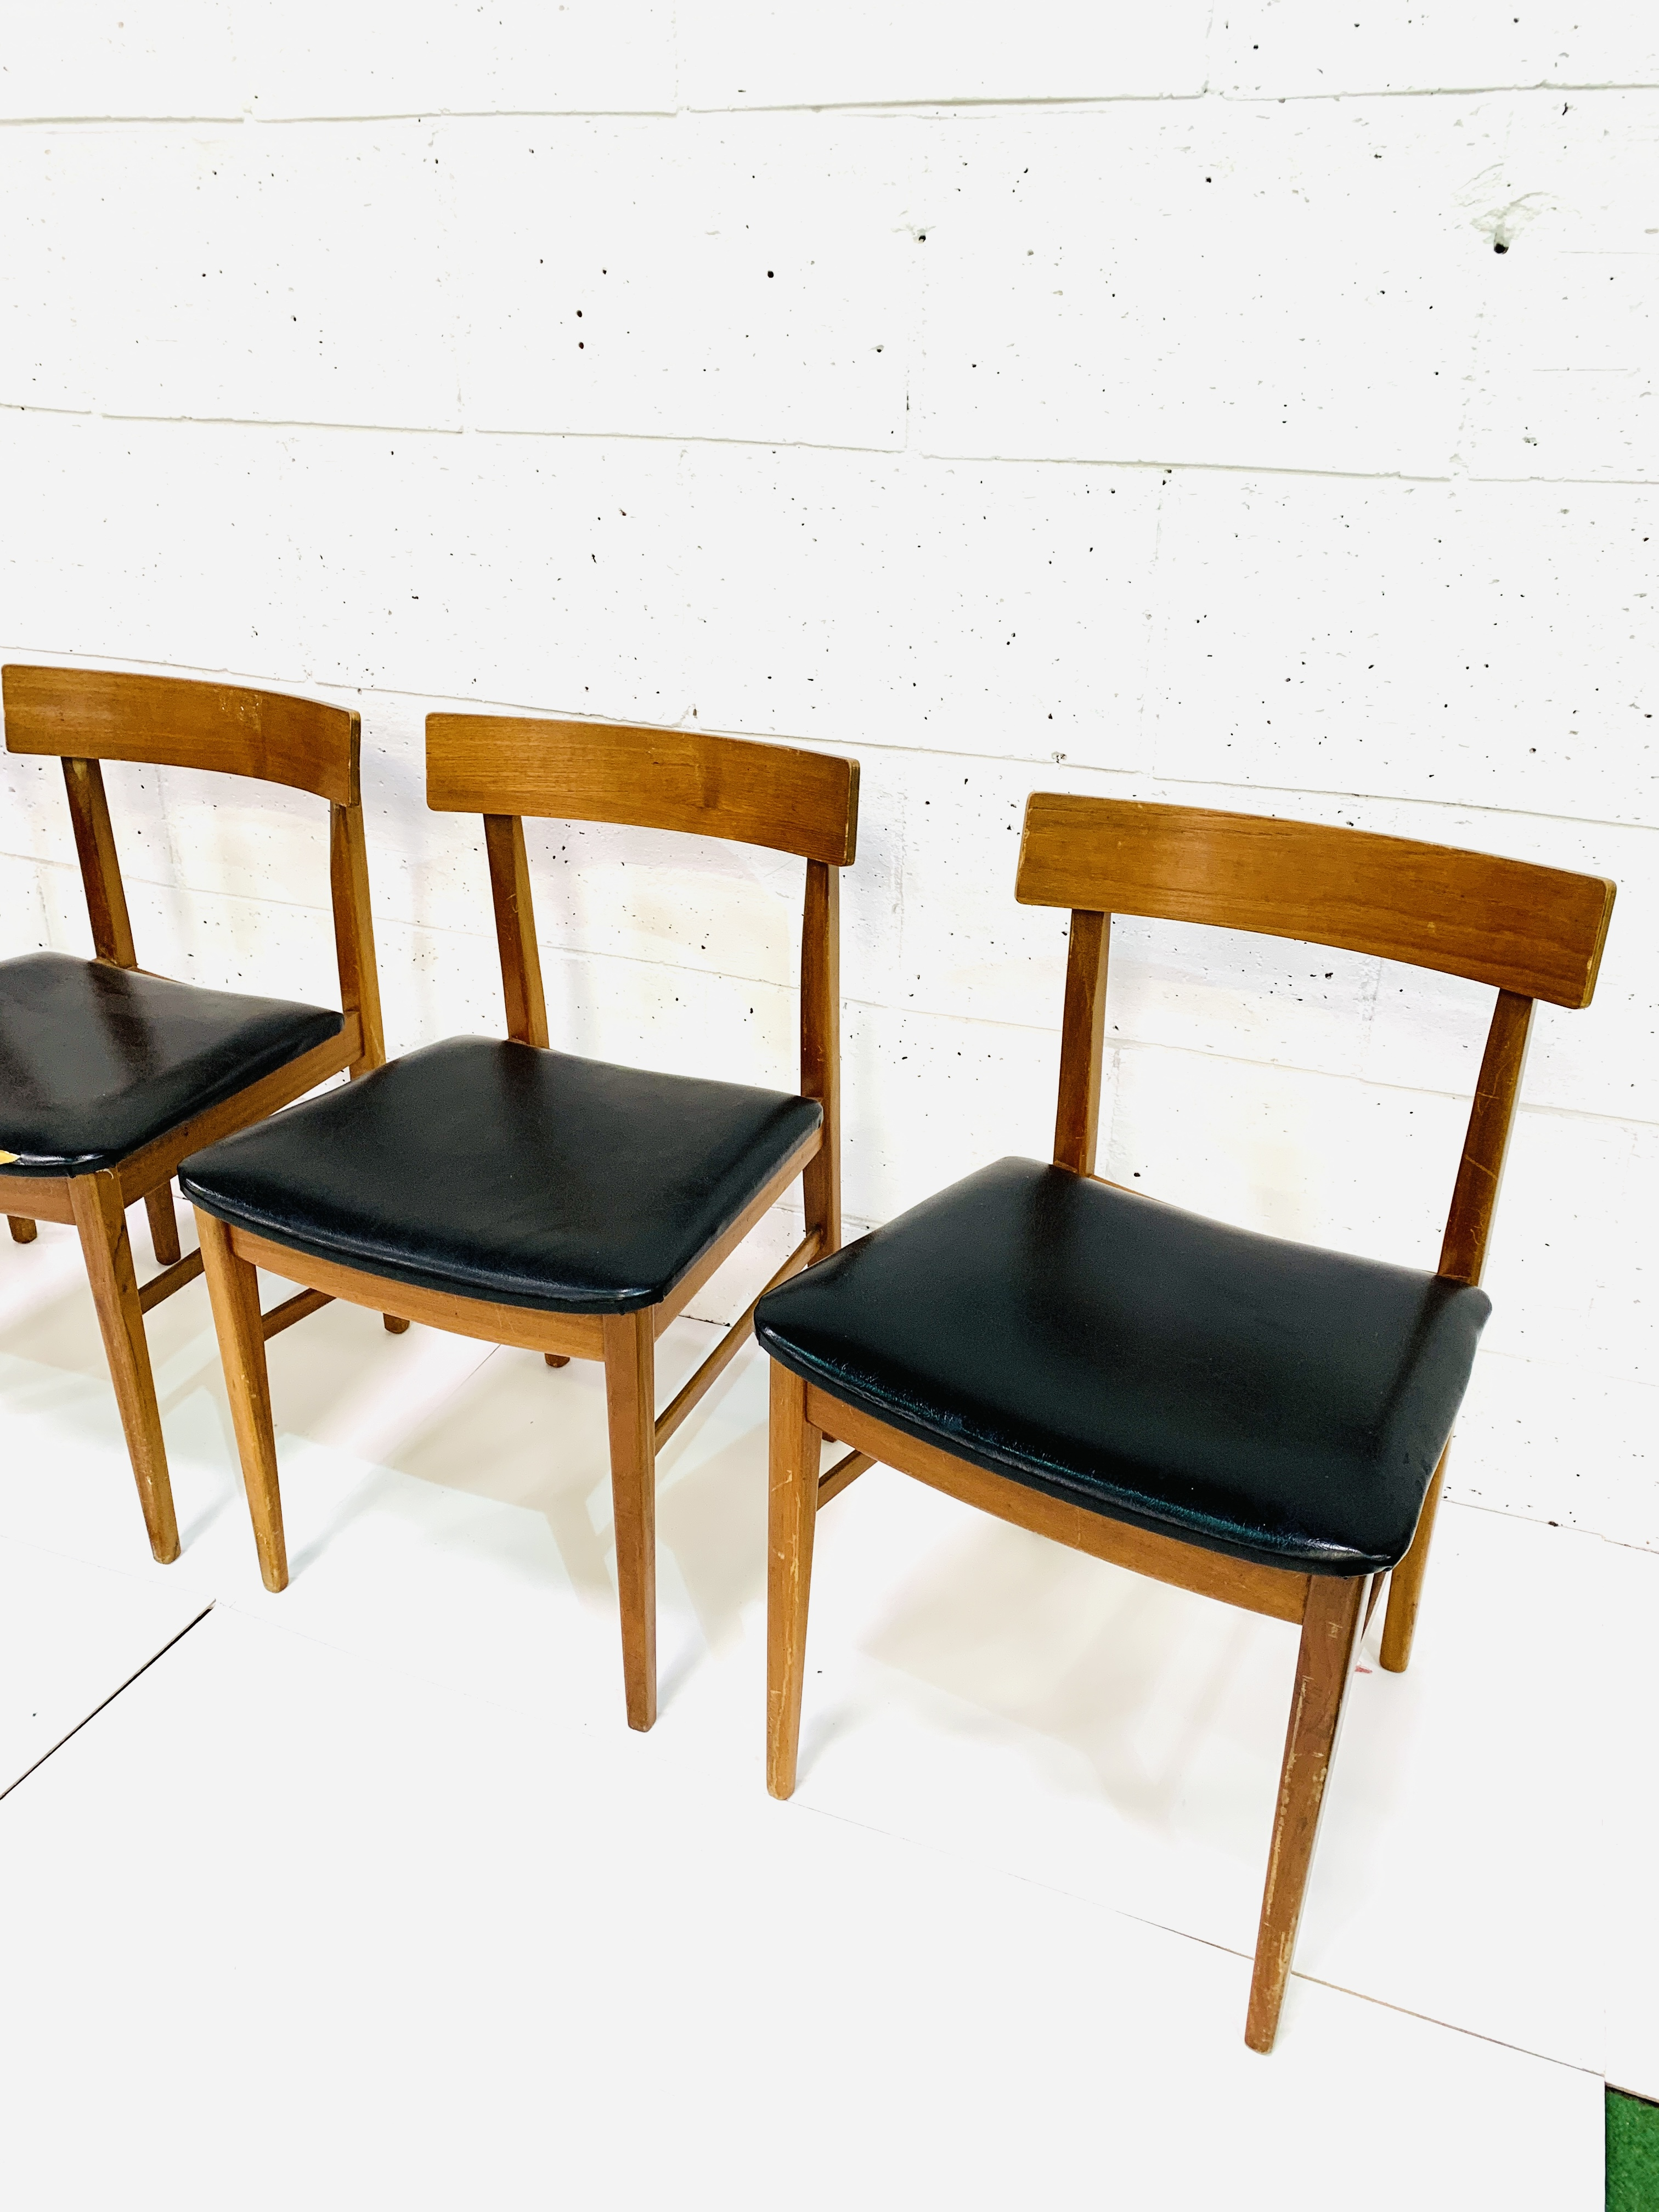 Four teak framed curved back dining chairs - Image 3 of 3